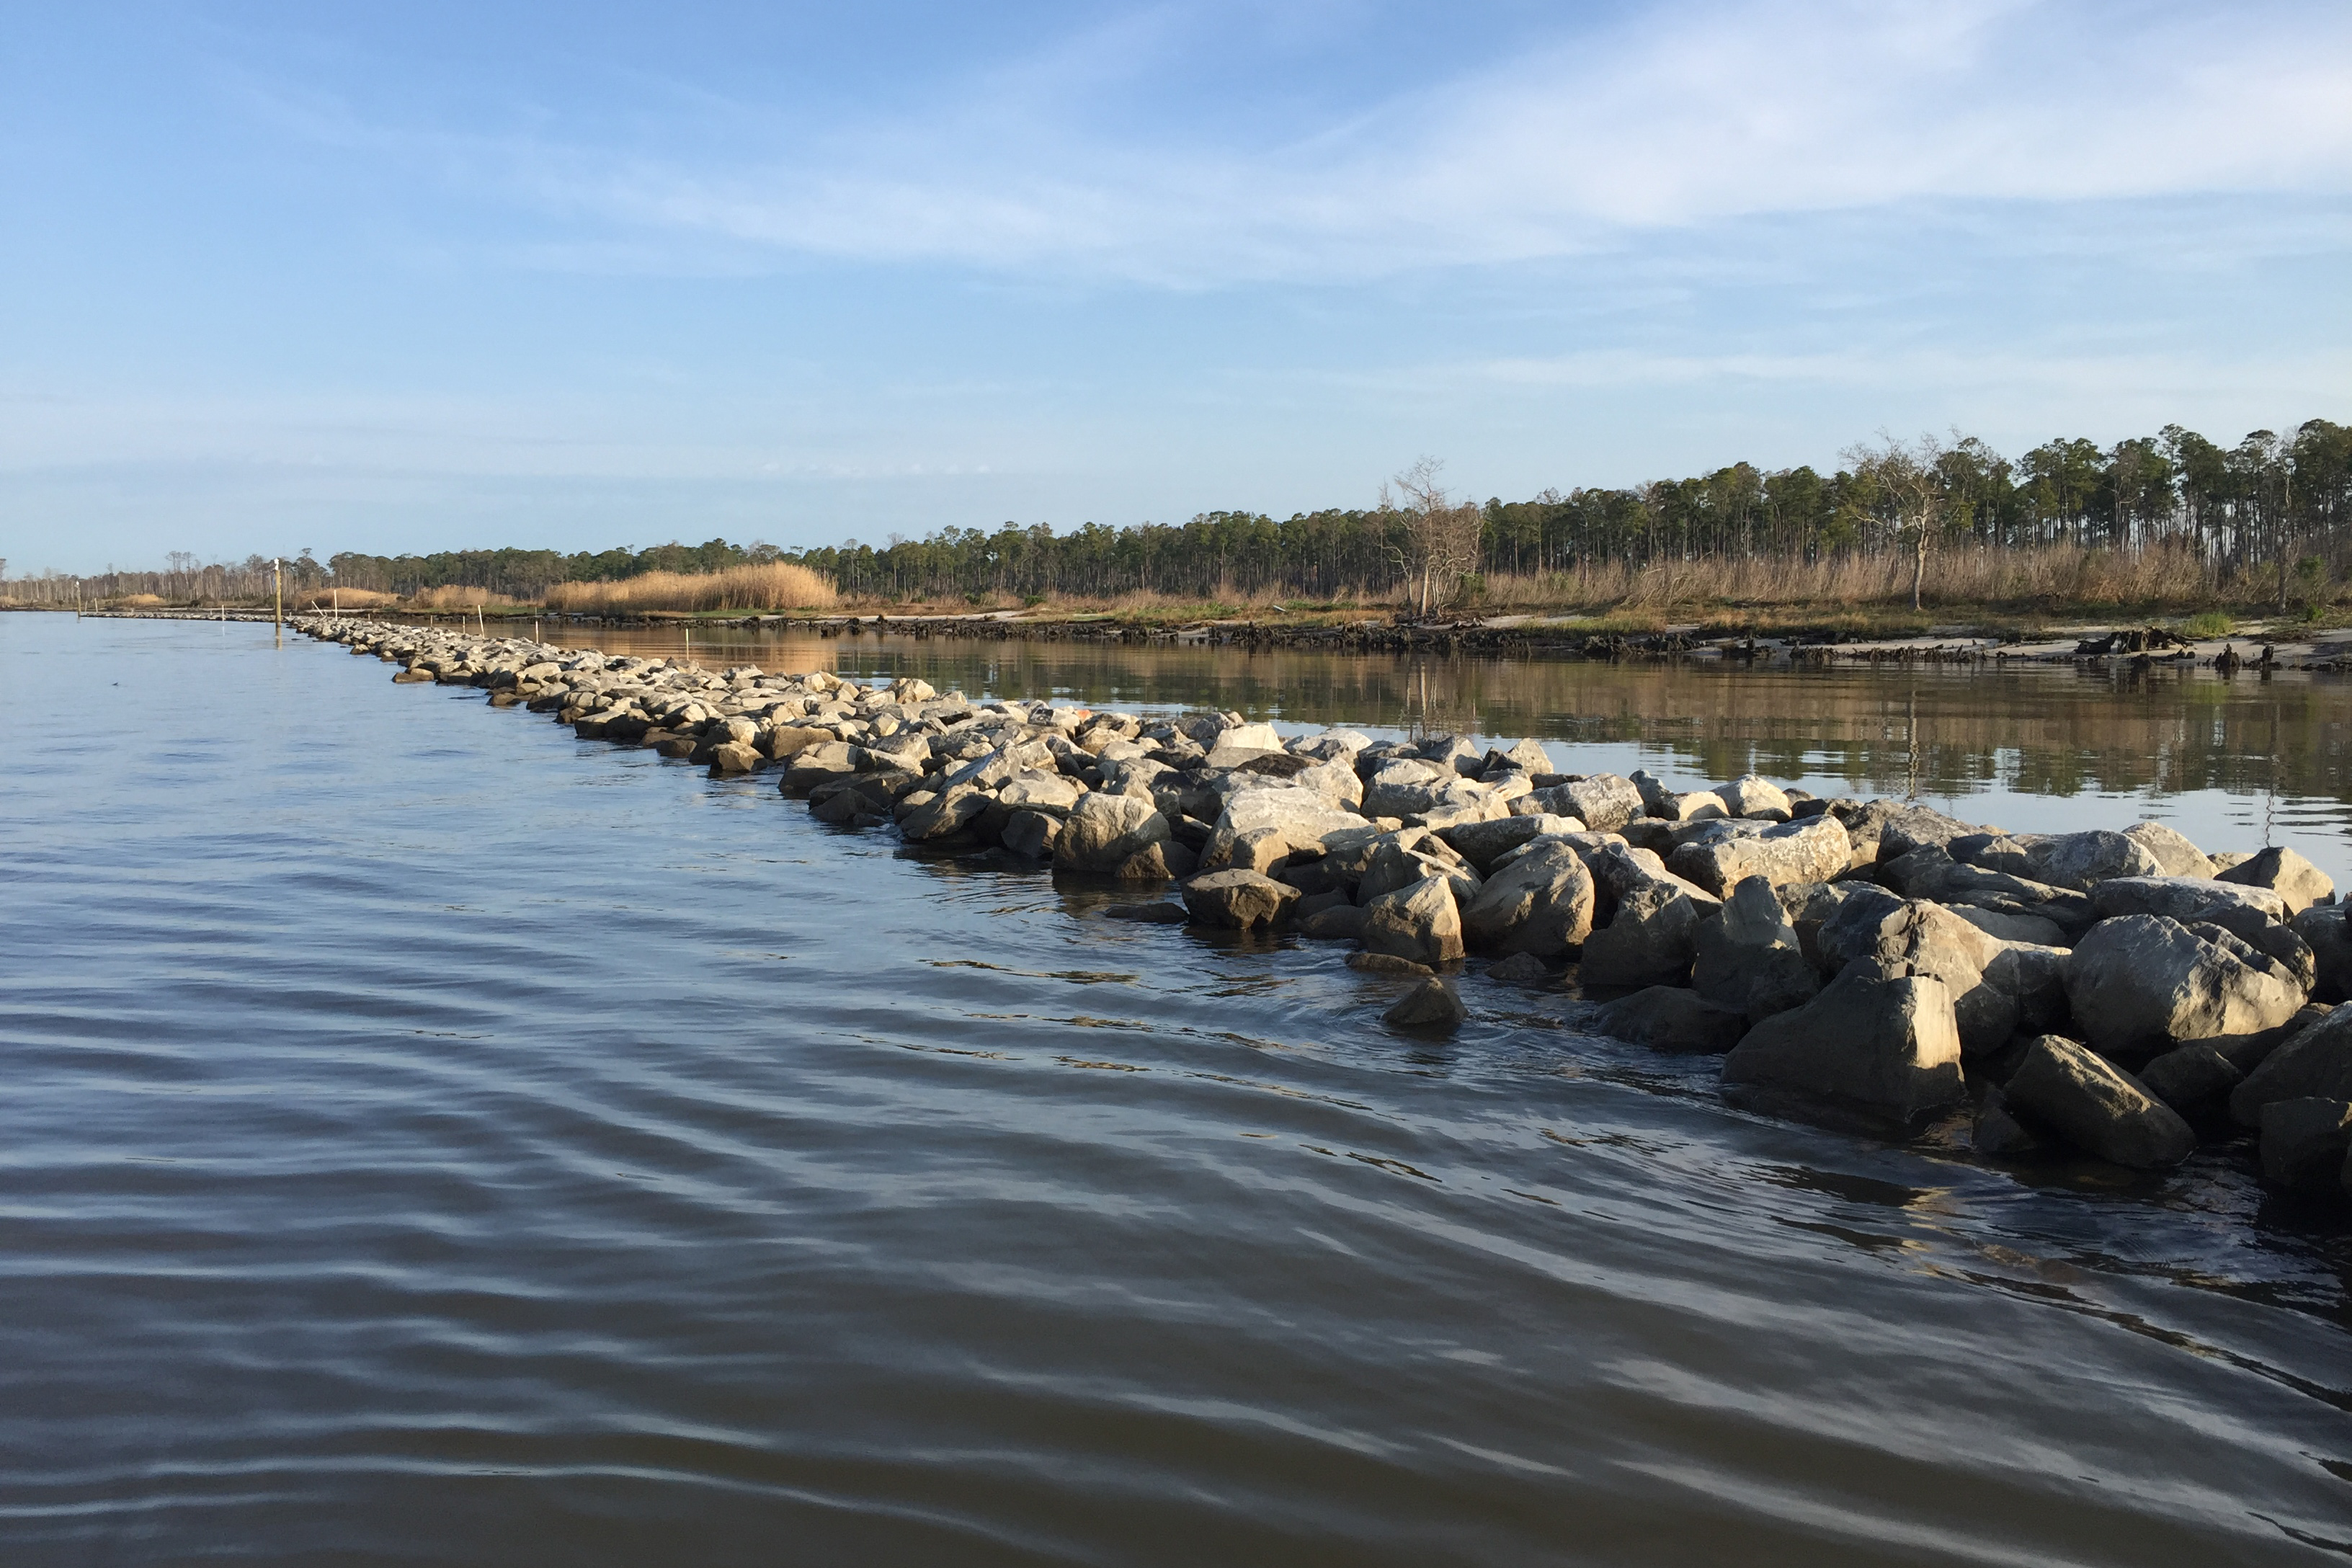 A line of rocks protecting marsh and upland habitat on the Gulf Coast in Alabama.